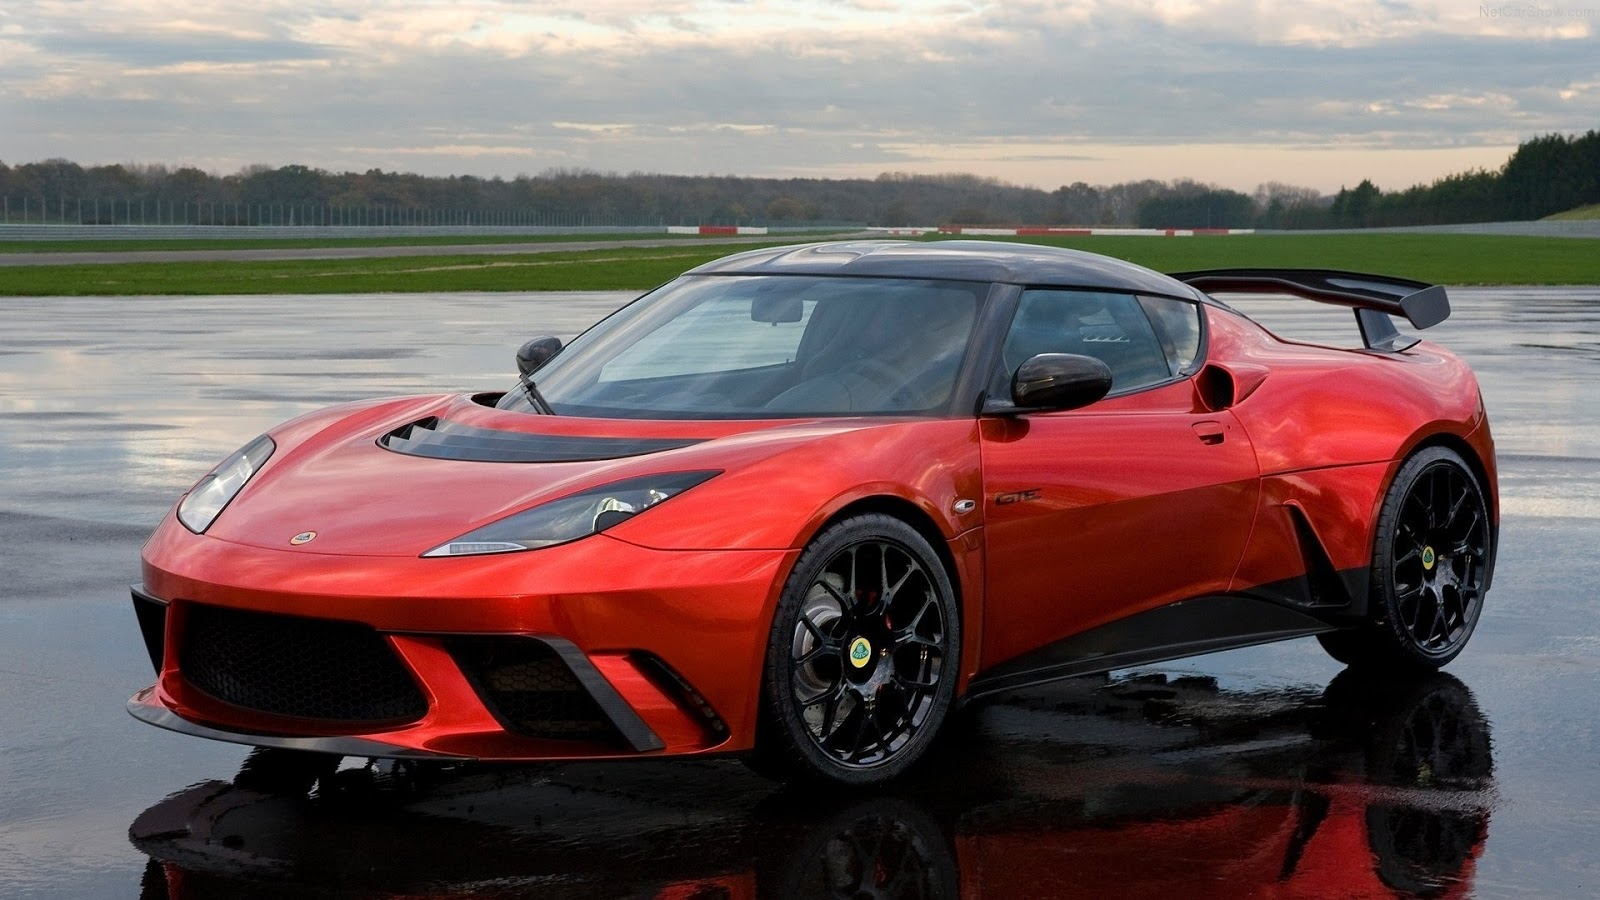 Lotus evora photo - 1